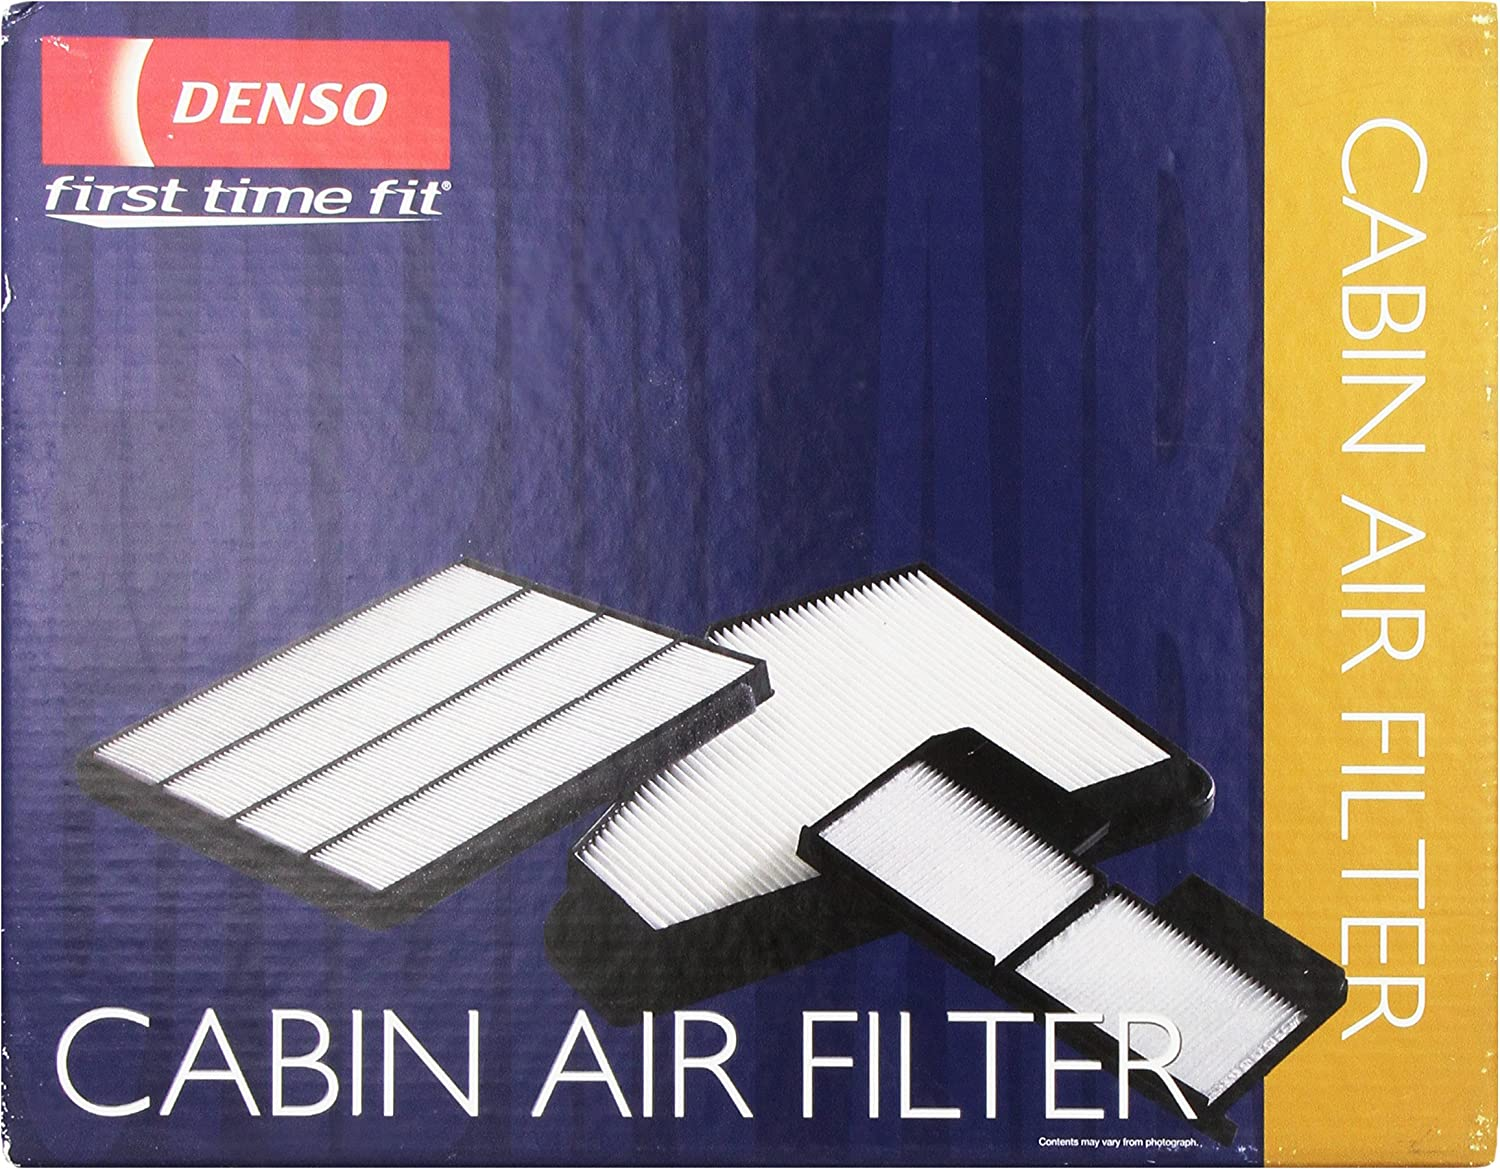 Denso 453-4000 First Time Fit Cabin Air Filter for Select Porsche Models